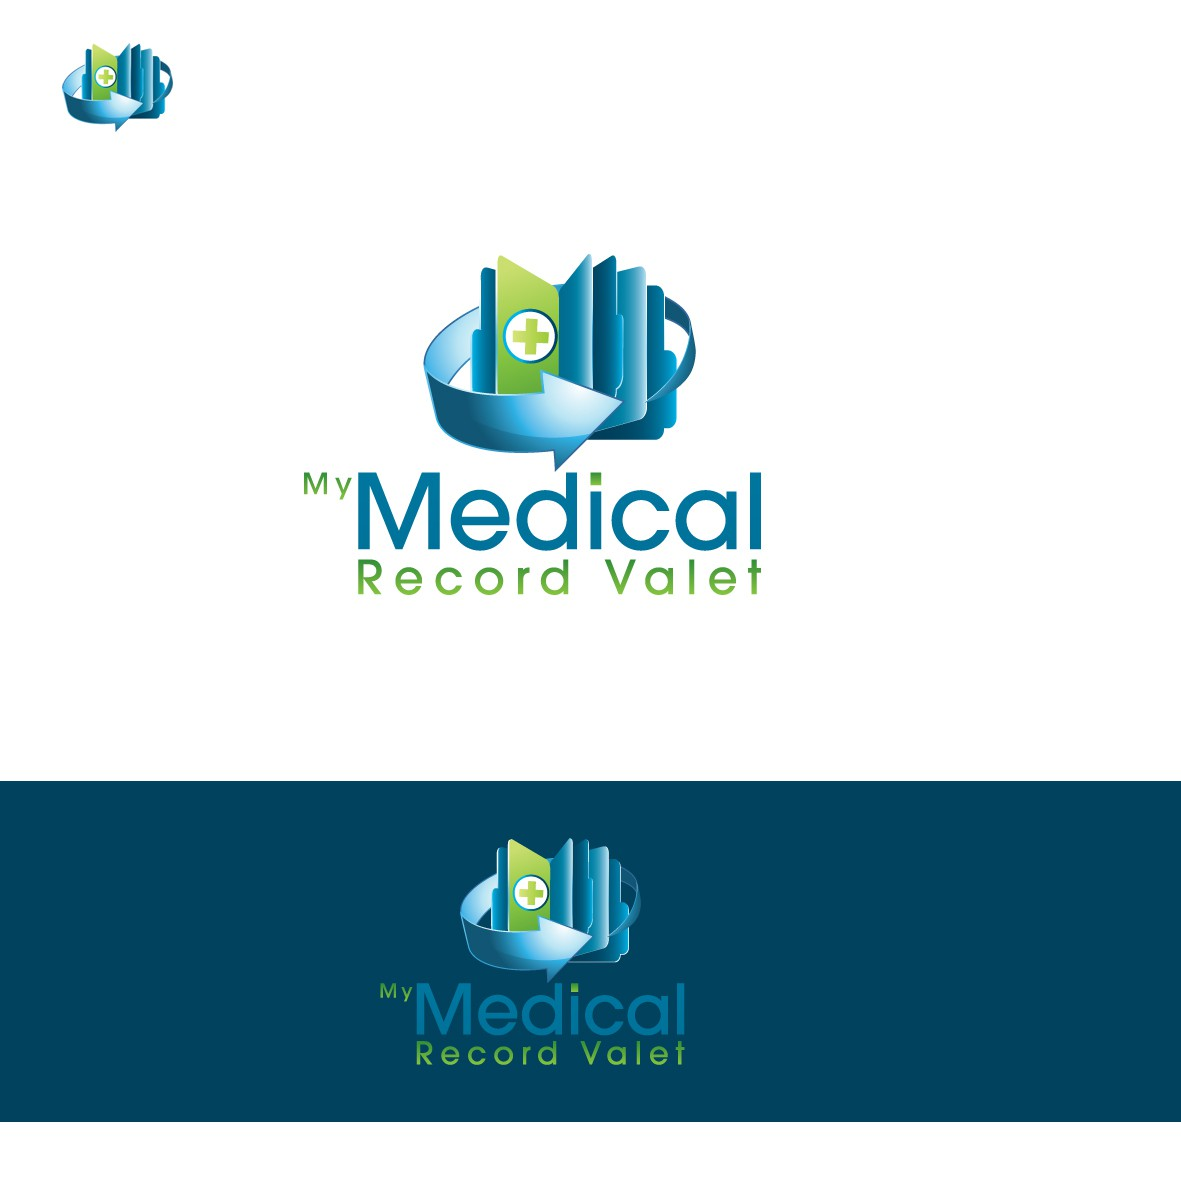 New logo wanted for My Medical Record Valet